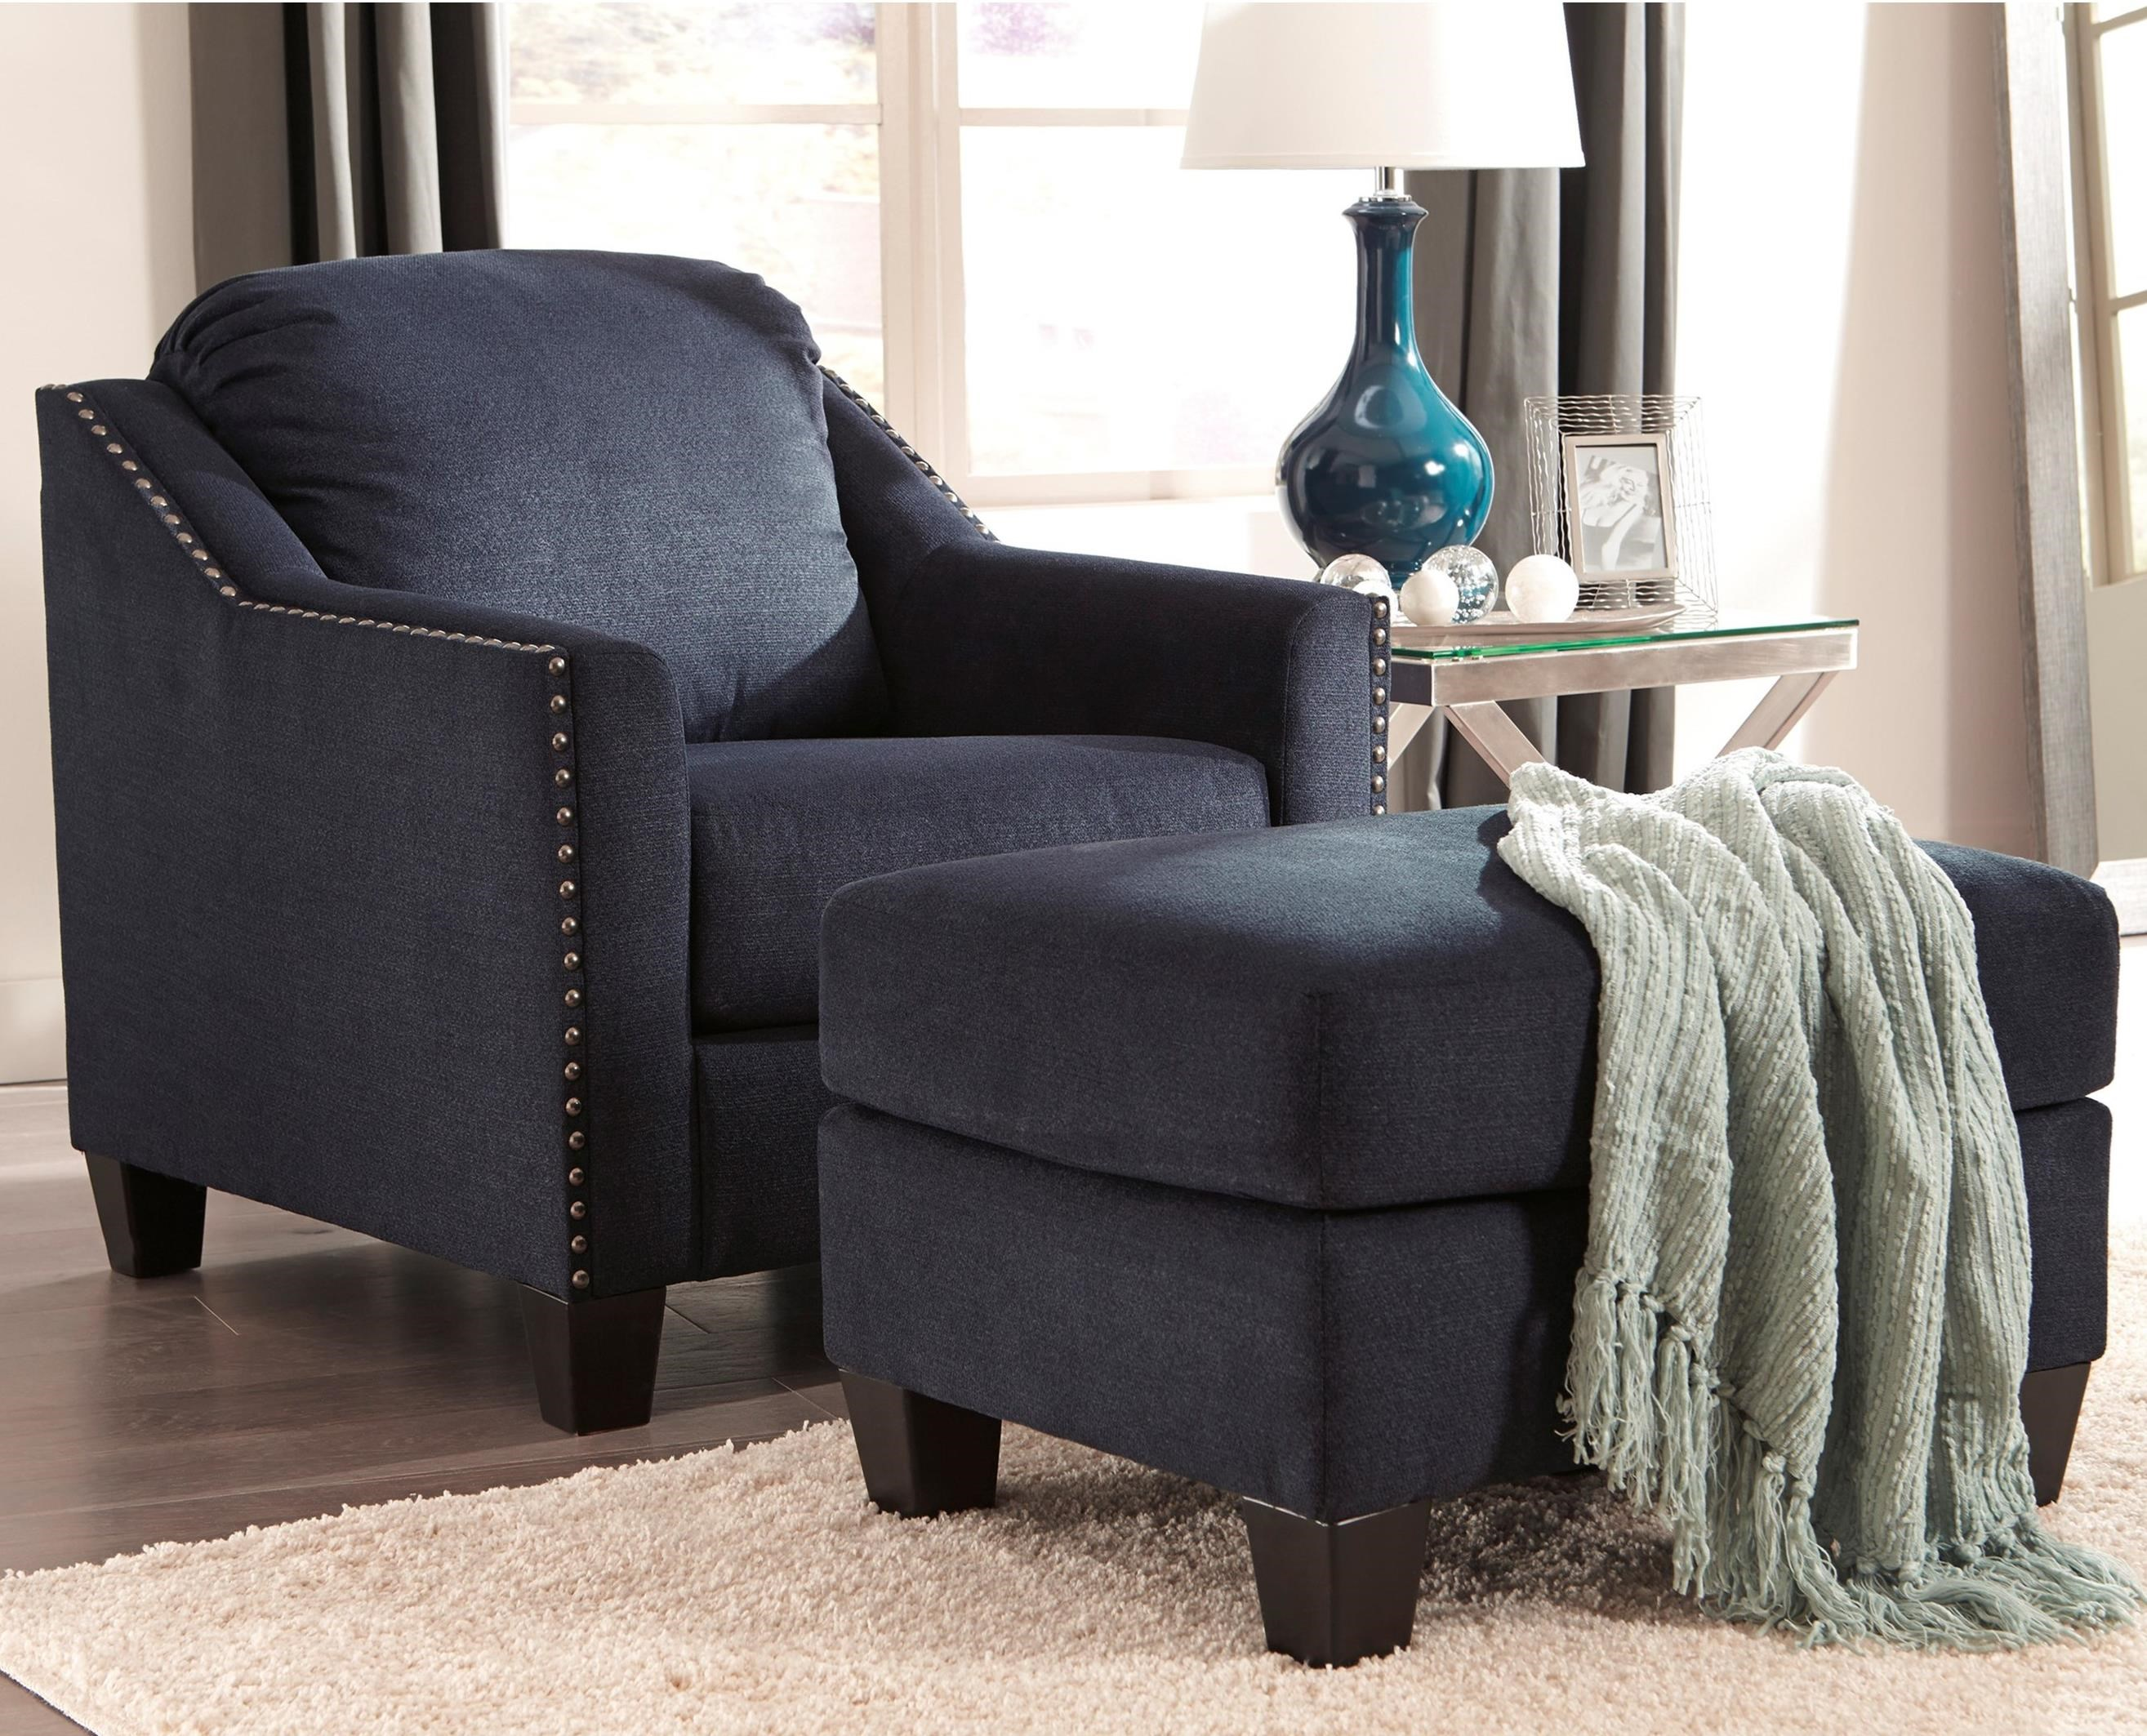 Nailhead Studded Chair And Ottoman Set By Benchcraft